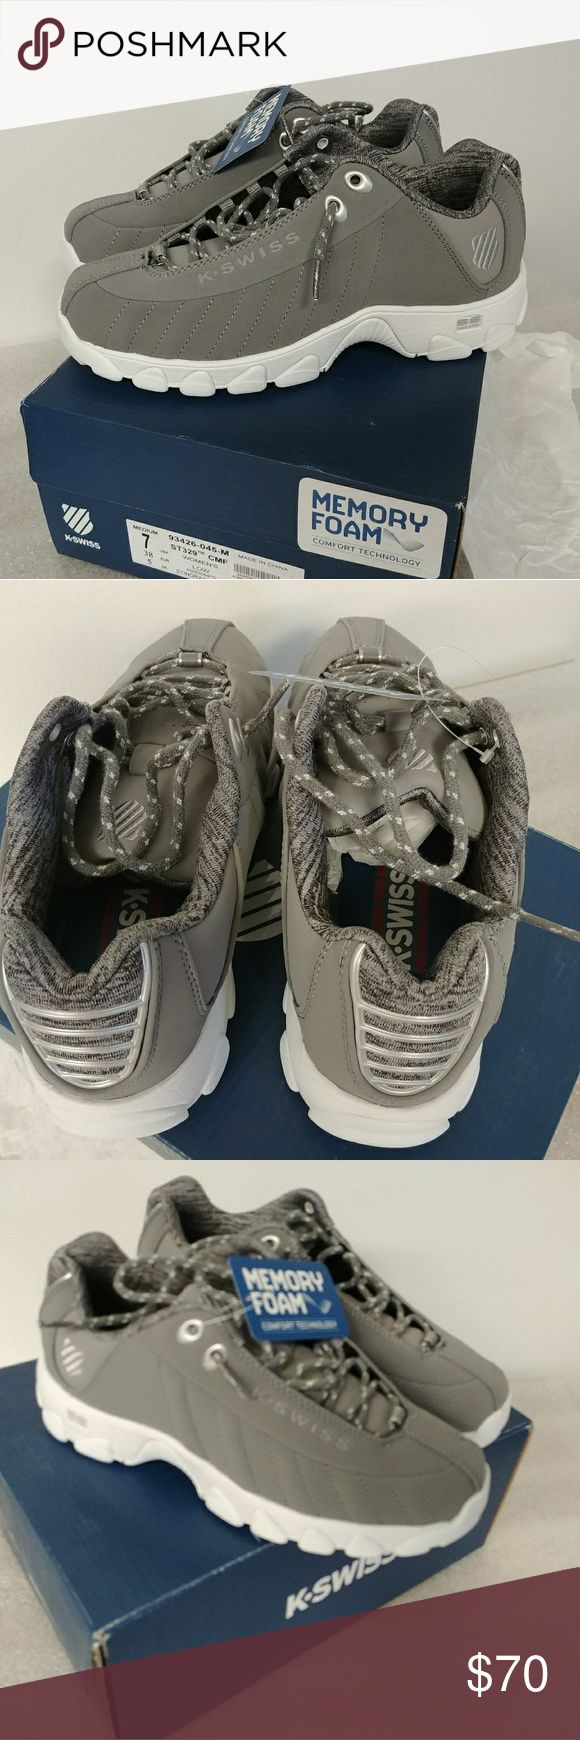 K-Swiss shoes women's size 7 gray Grey Brand new Women's USA size 7 Stored in smoke free facility I ship same or next day depending when you buy K-Swiss Shoes Sneakers